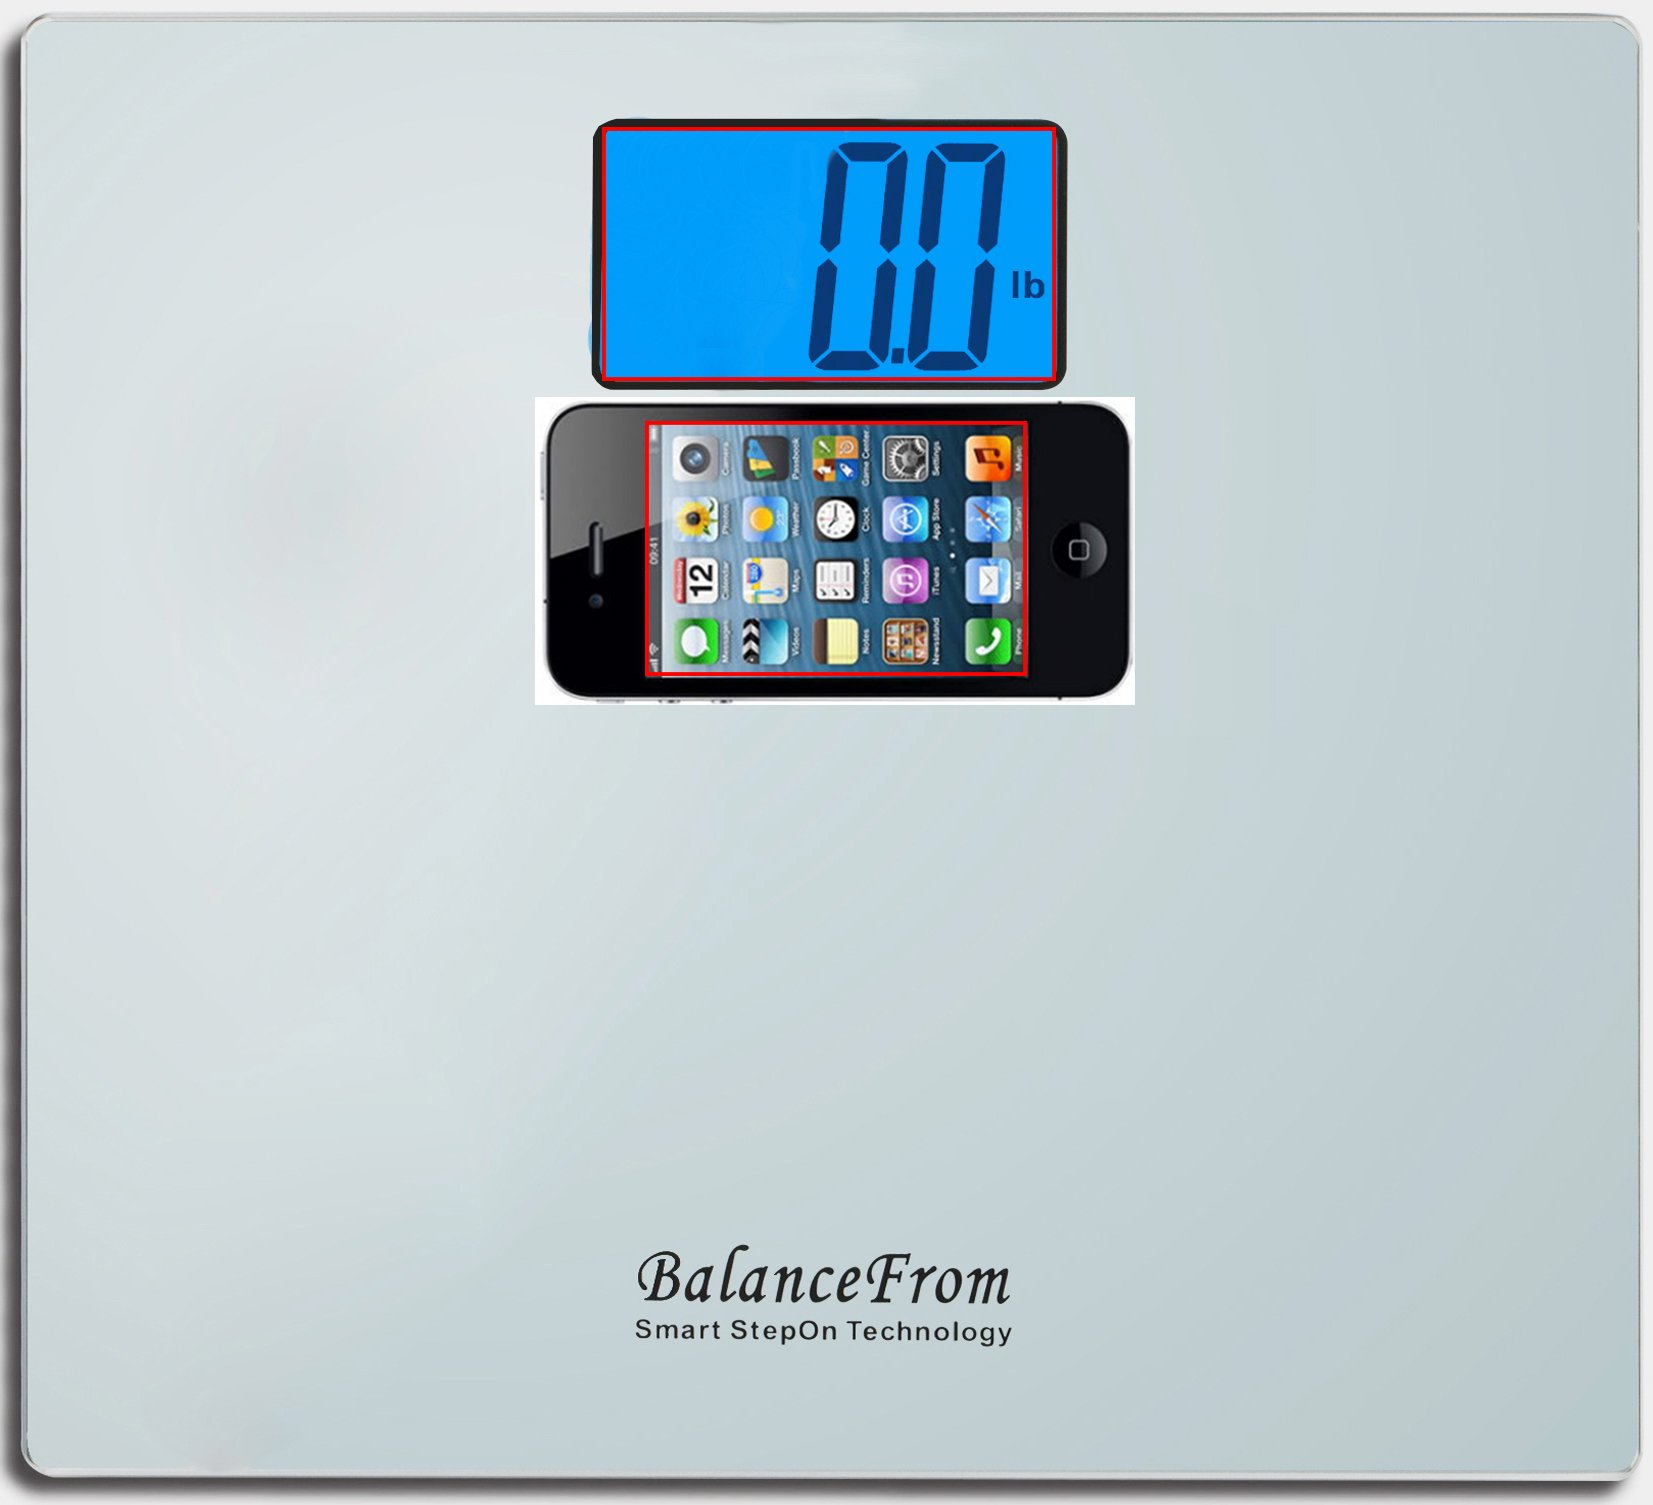 BalanceFrom High Accuracy Digital Bathroom Scale with Large Backlight Display and''Step-On'' Technology [Newest Version] (Silver) by BalanceFrom (Image #2)